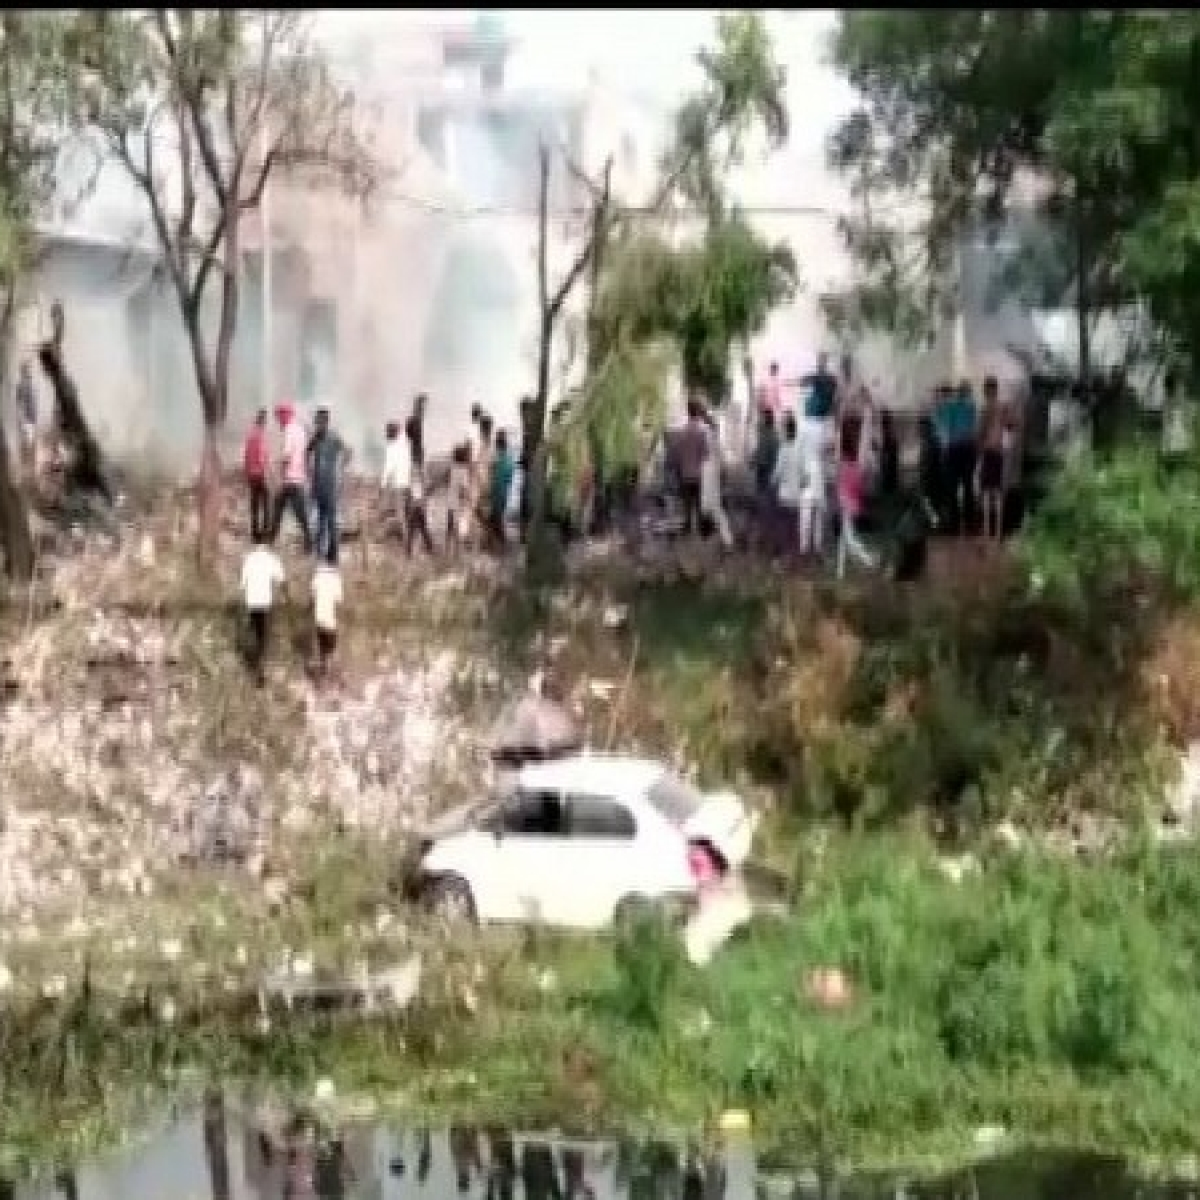 Punjab: 19 dead, 20 injured in crackers factory fire at Gurdaspur